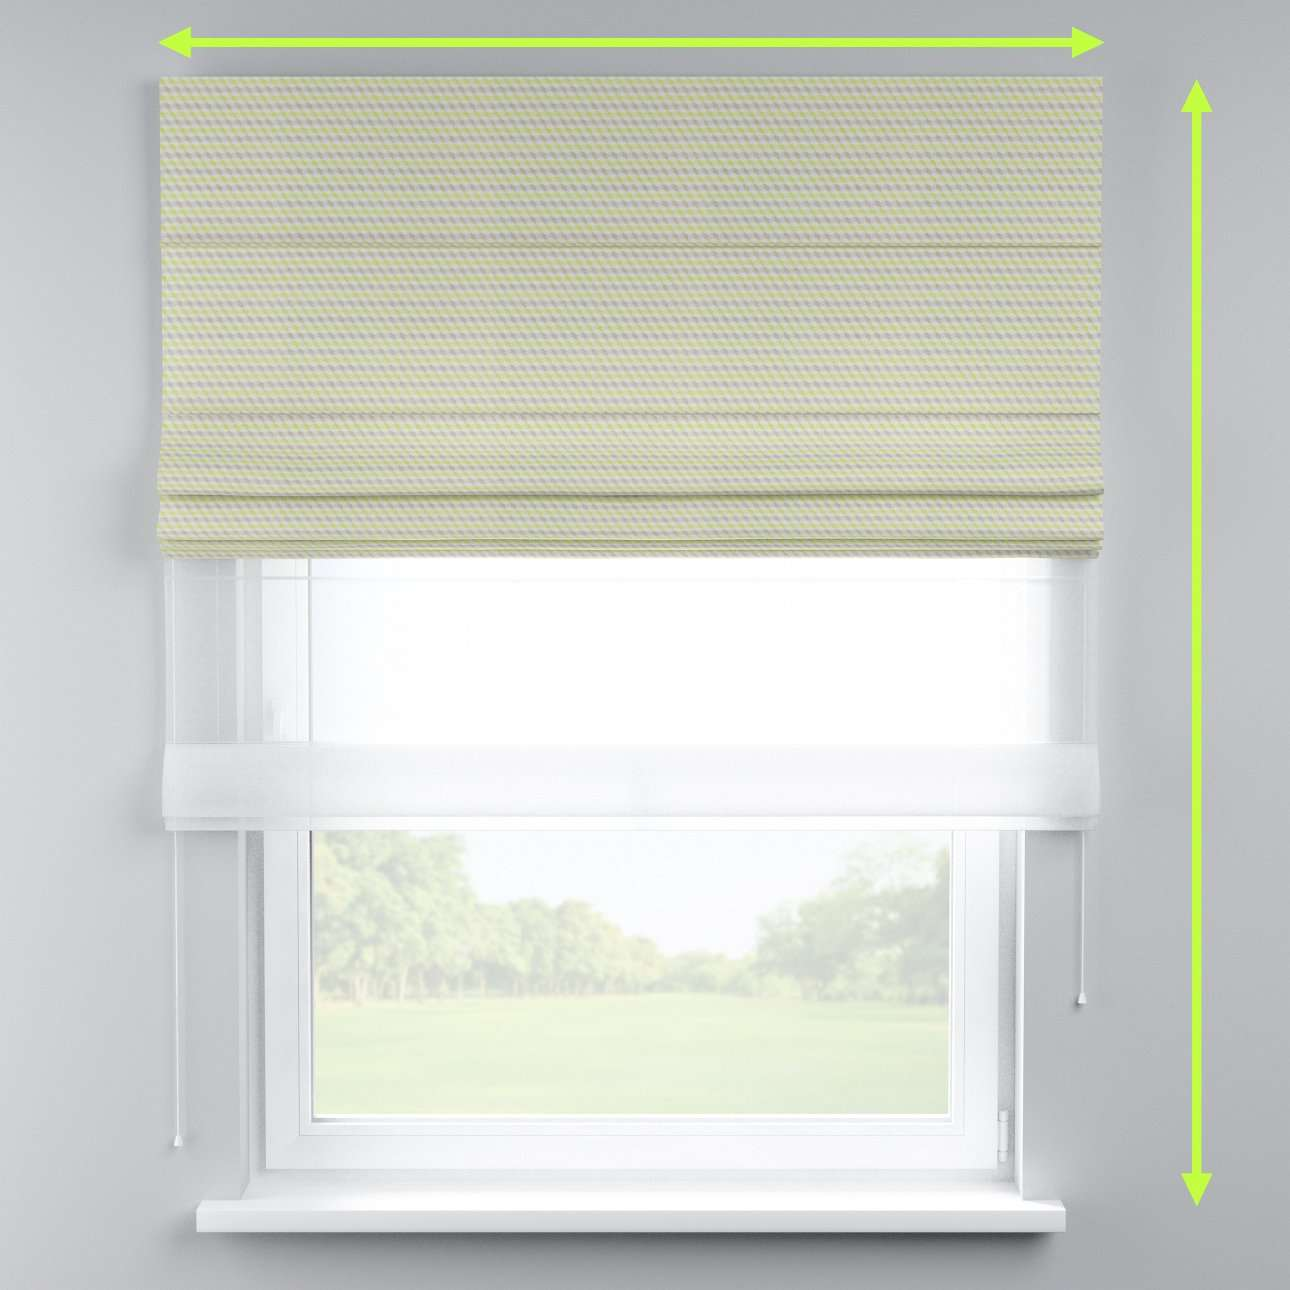 Voile and fabric roman blind (DUO II) in collection Rustica, fabric: 140-36